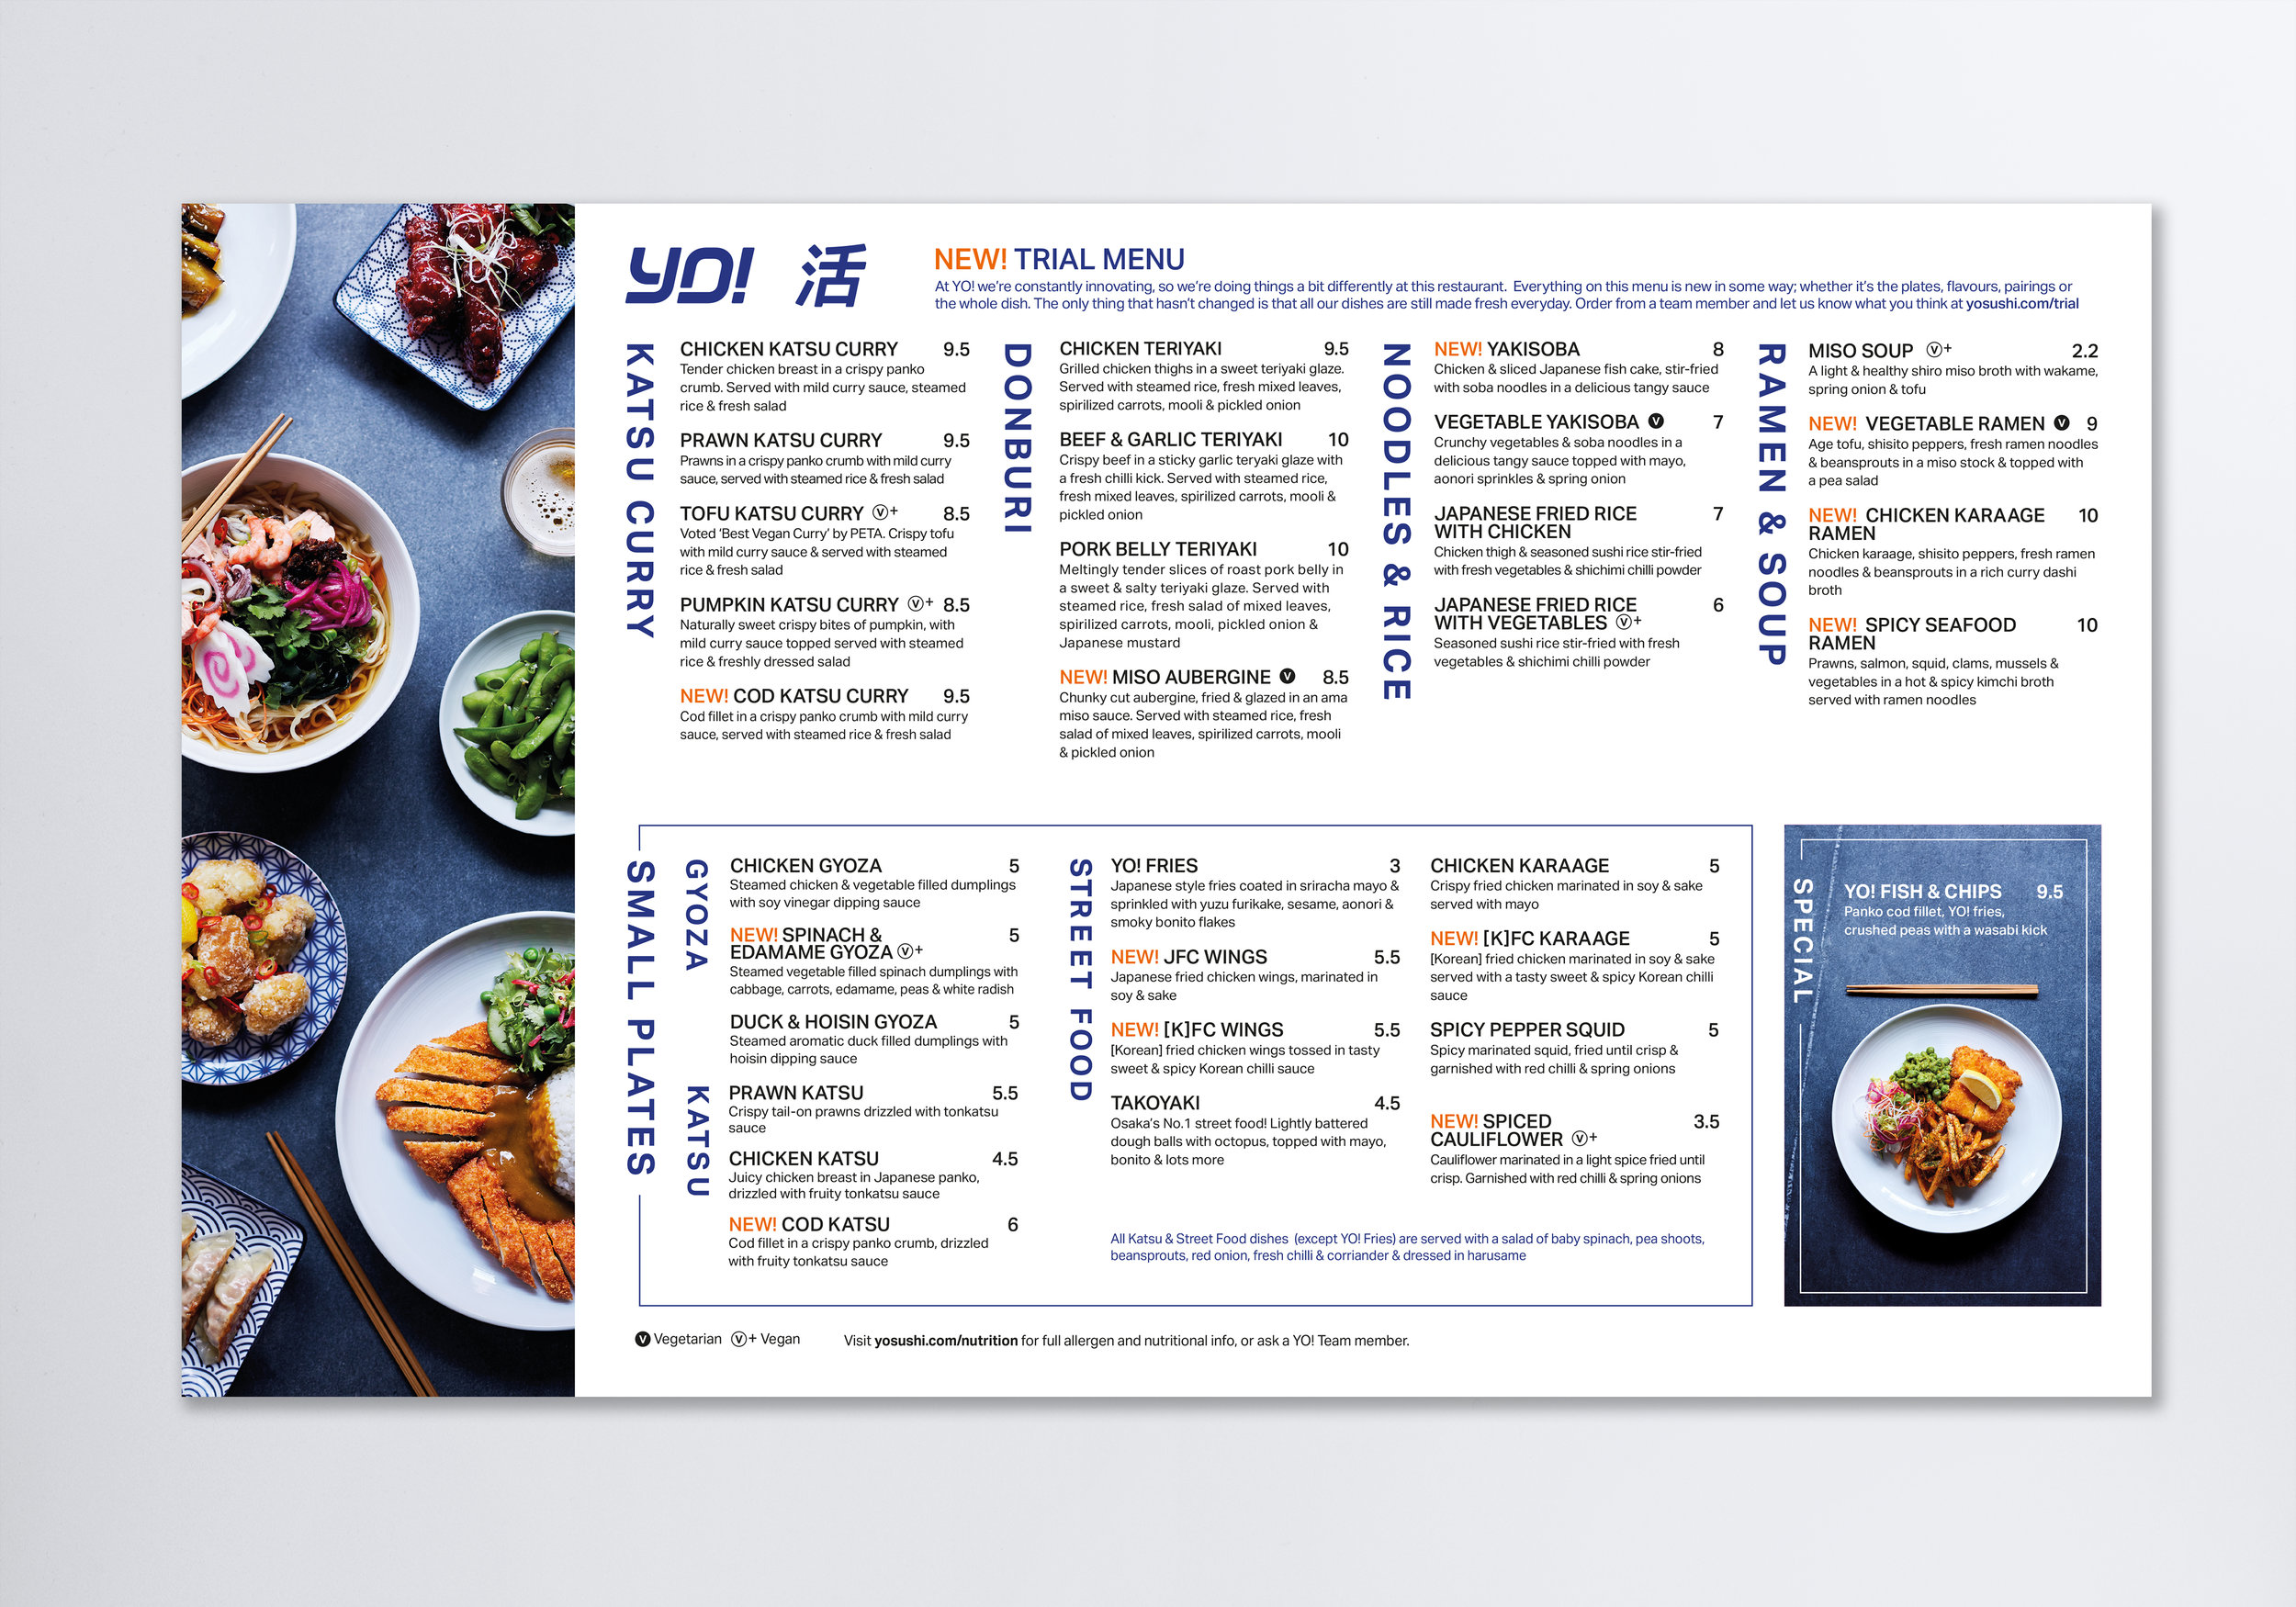 New hot dishes menu, featuring the new photography and clean typography